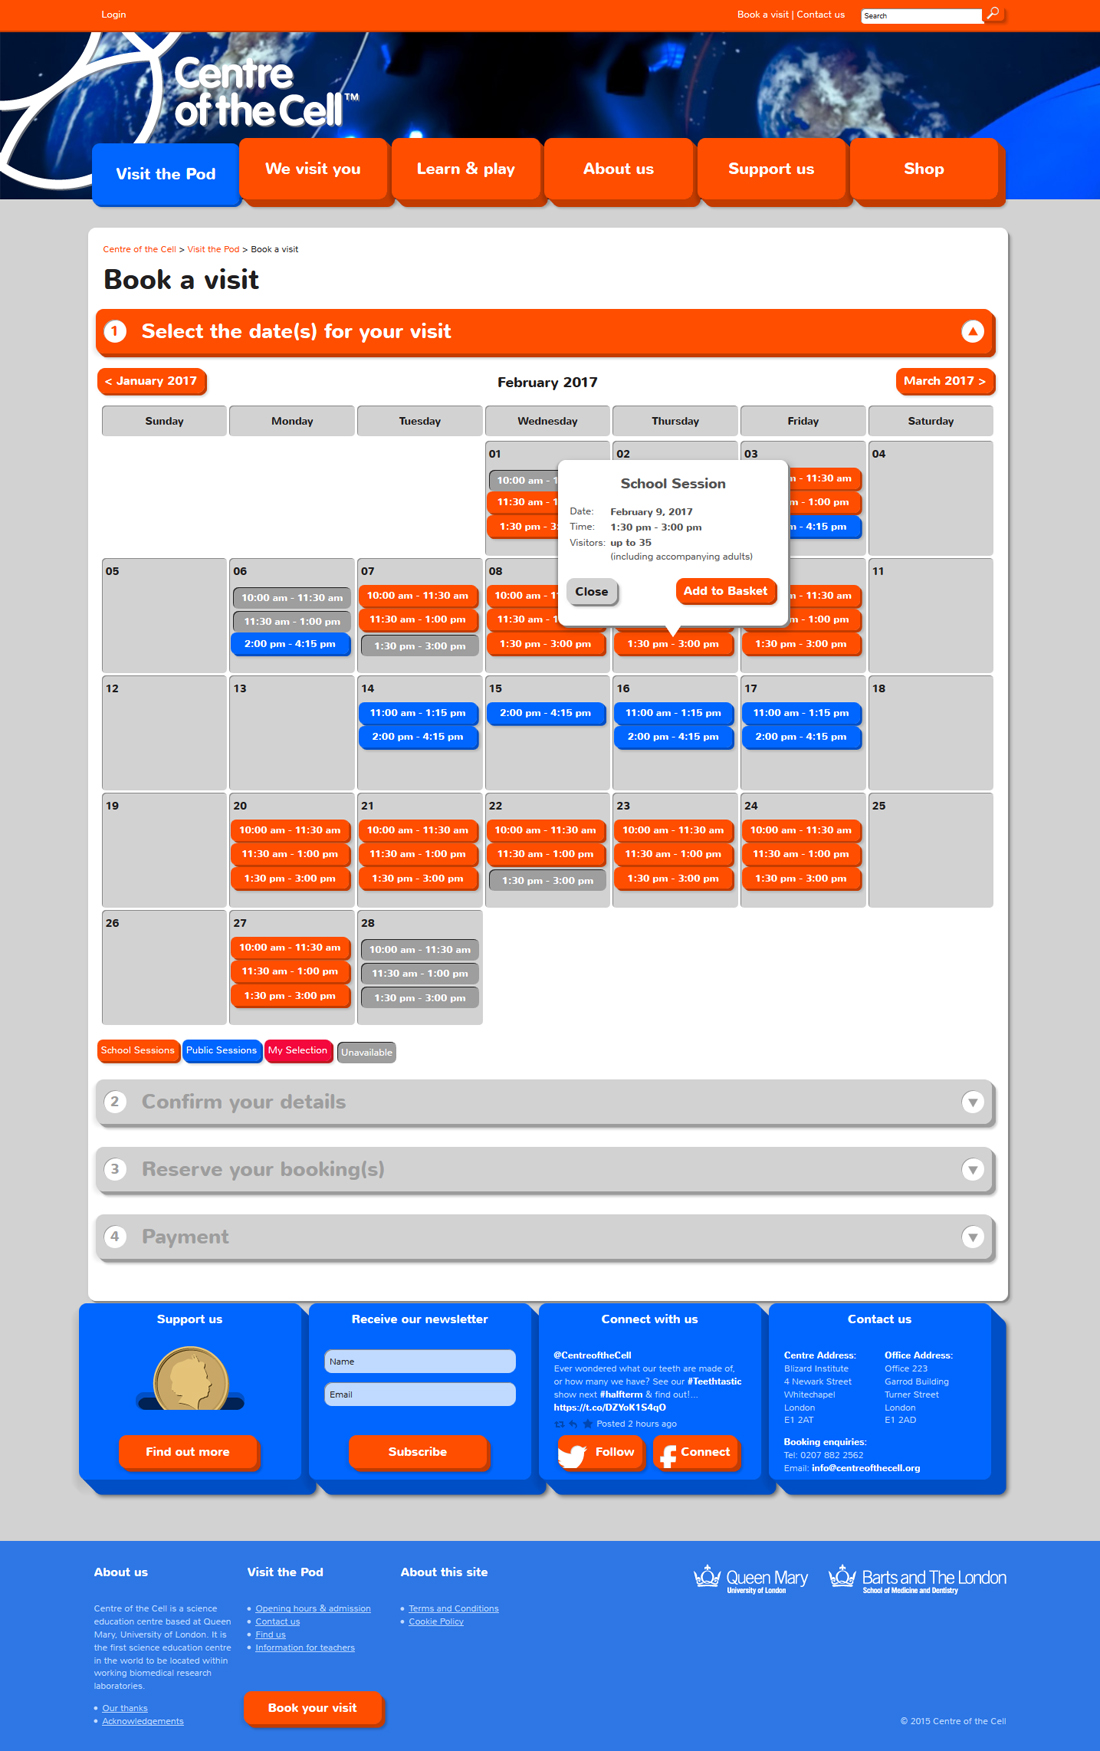 Centre of the Cell website booking page